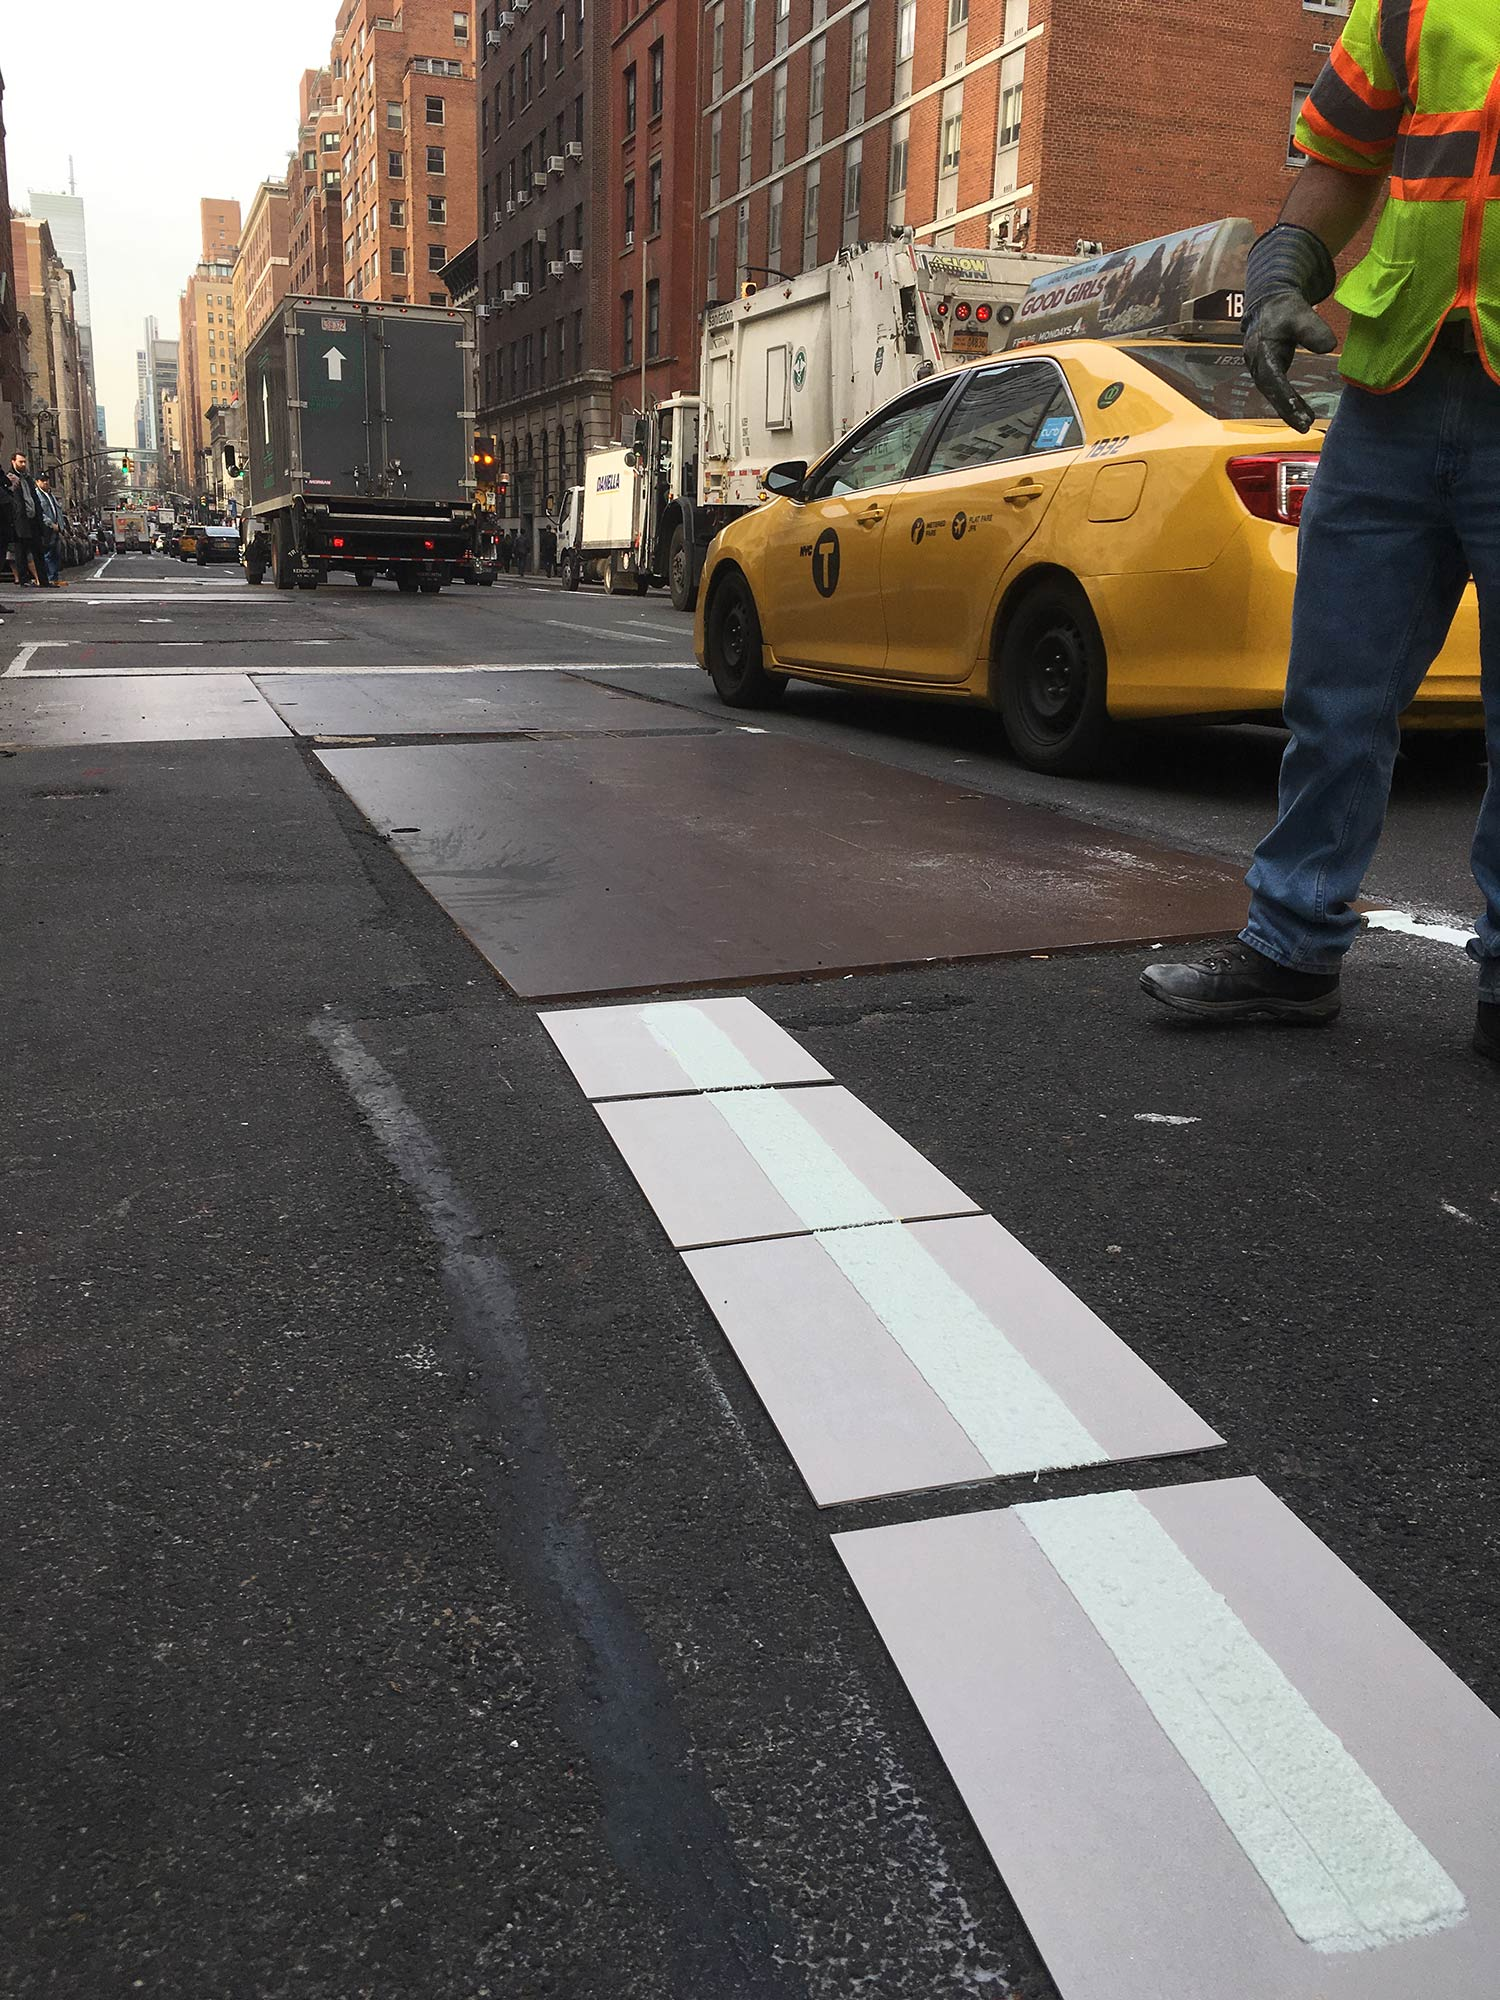 Road Marking Crew  Lexington Ave, Btw E77 St - E78 St, Manhattan, New York